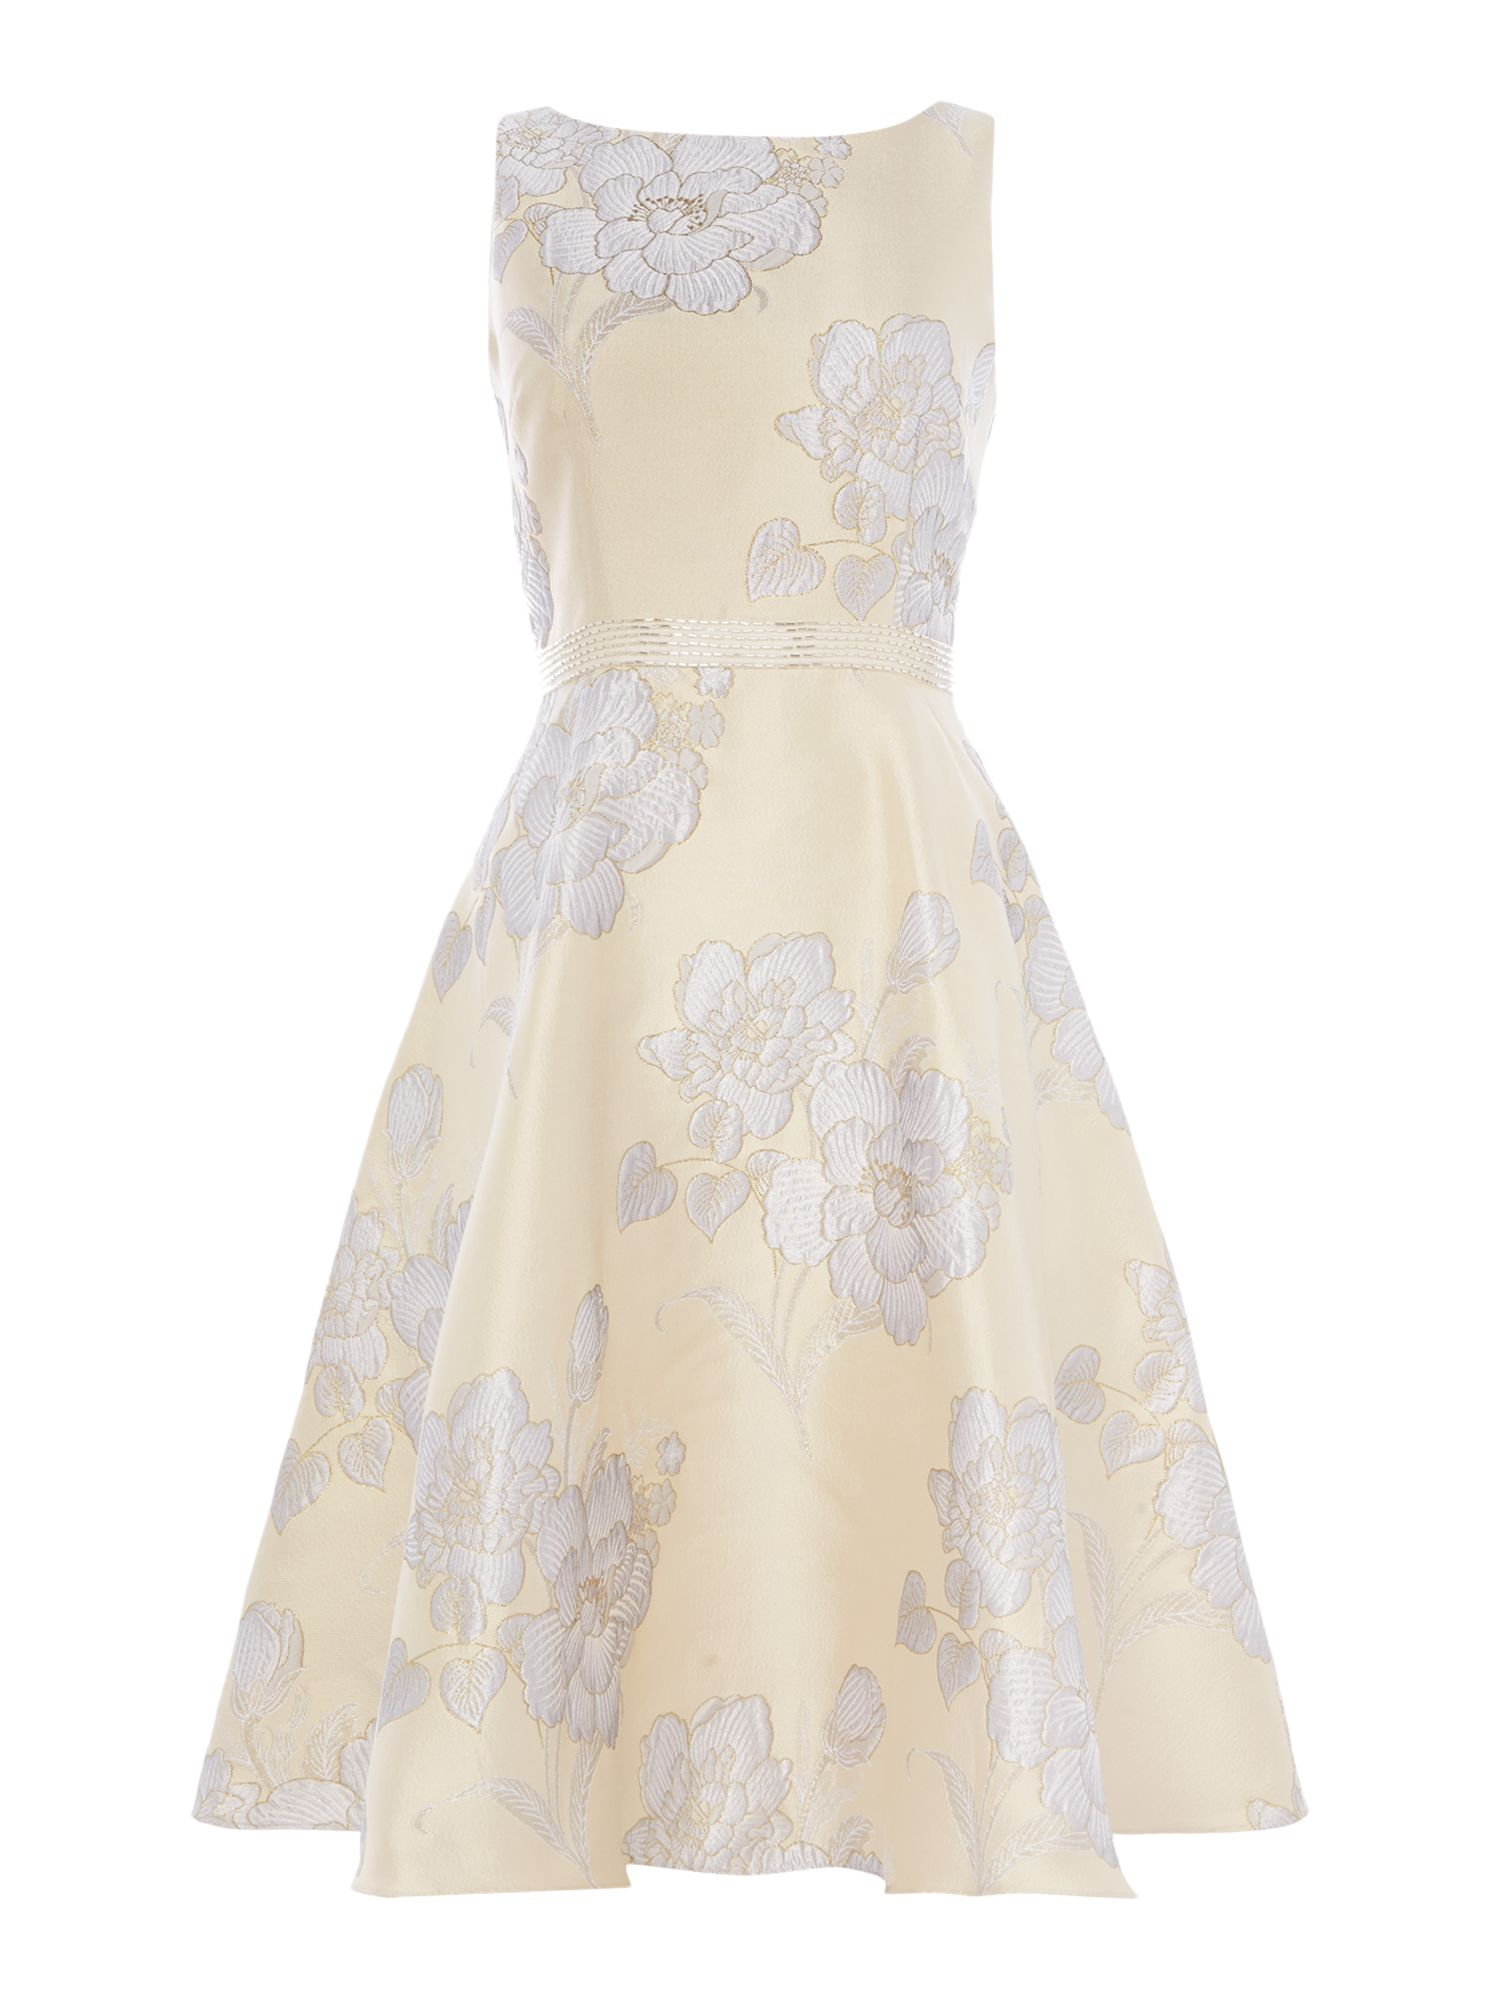 Adrianna Papell Jacquard floral print dress, Silver